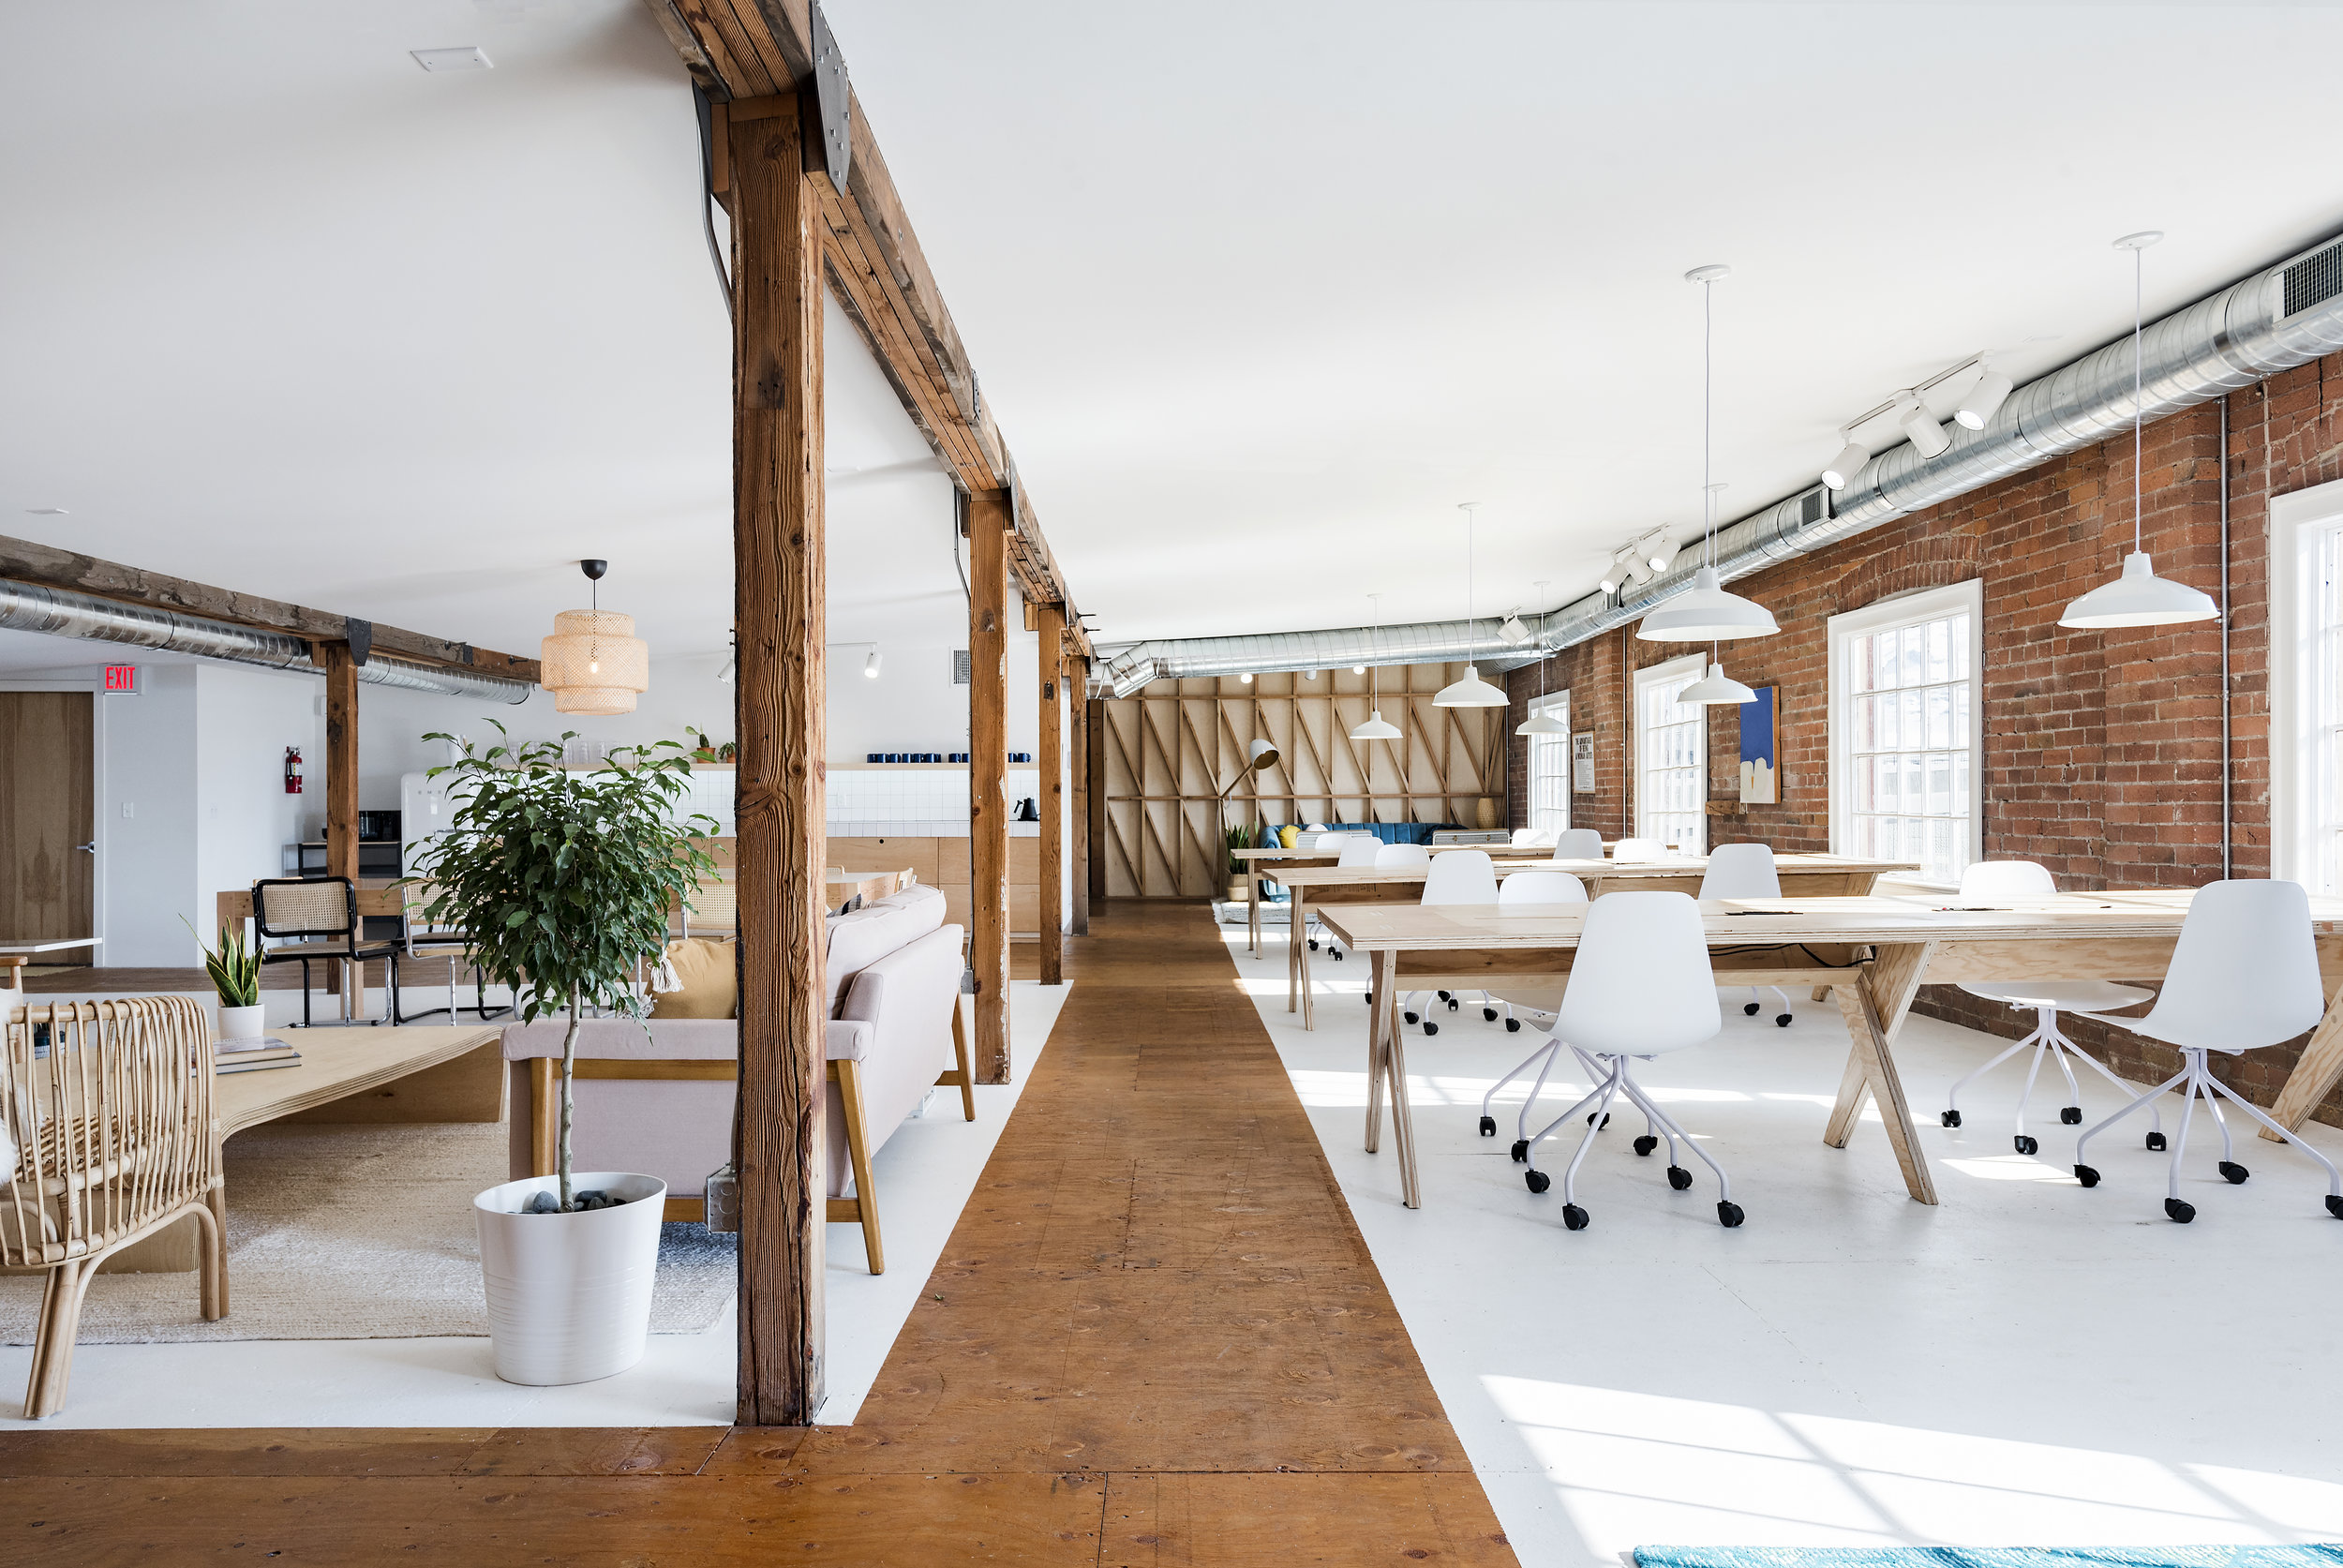 open workspace - the open floor plan creates an ideal environment for coworking and collaboration in salt lake city.monday-friday: 9am-8pm saturday: 9am-3pm.located at 412 s 700 w #210, salt lake city, ut, 84104